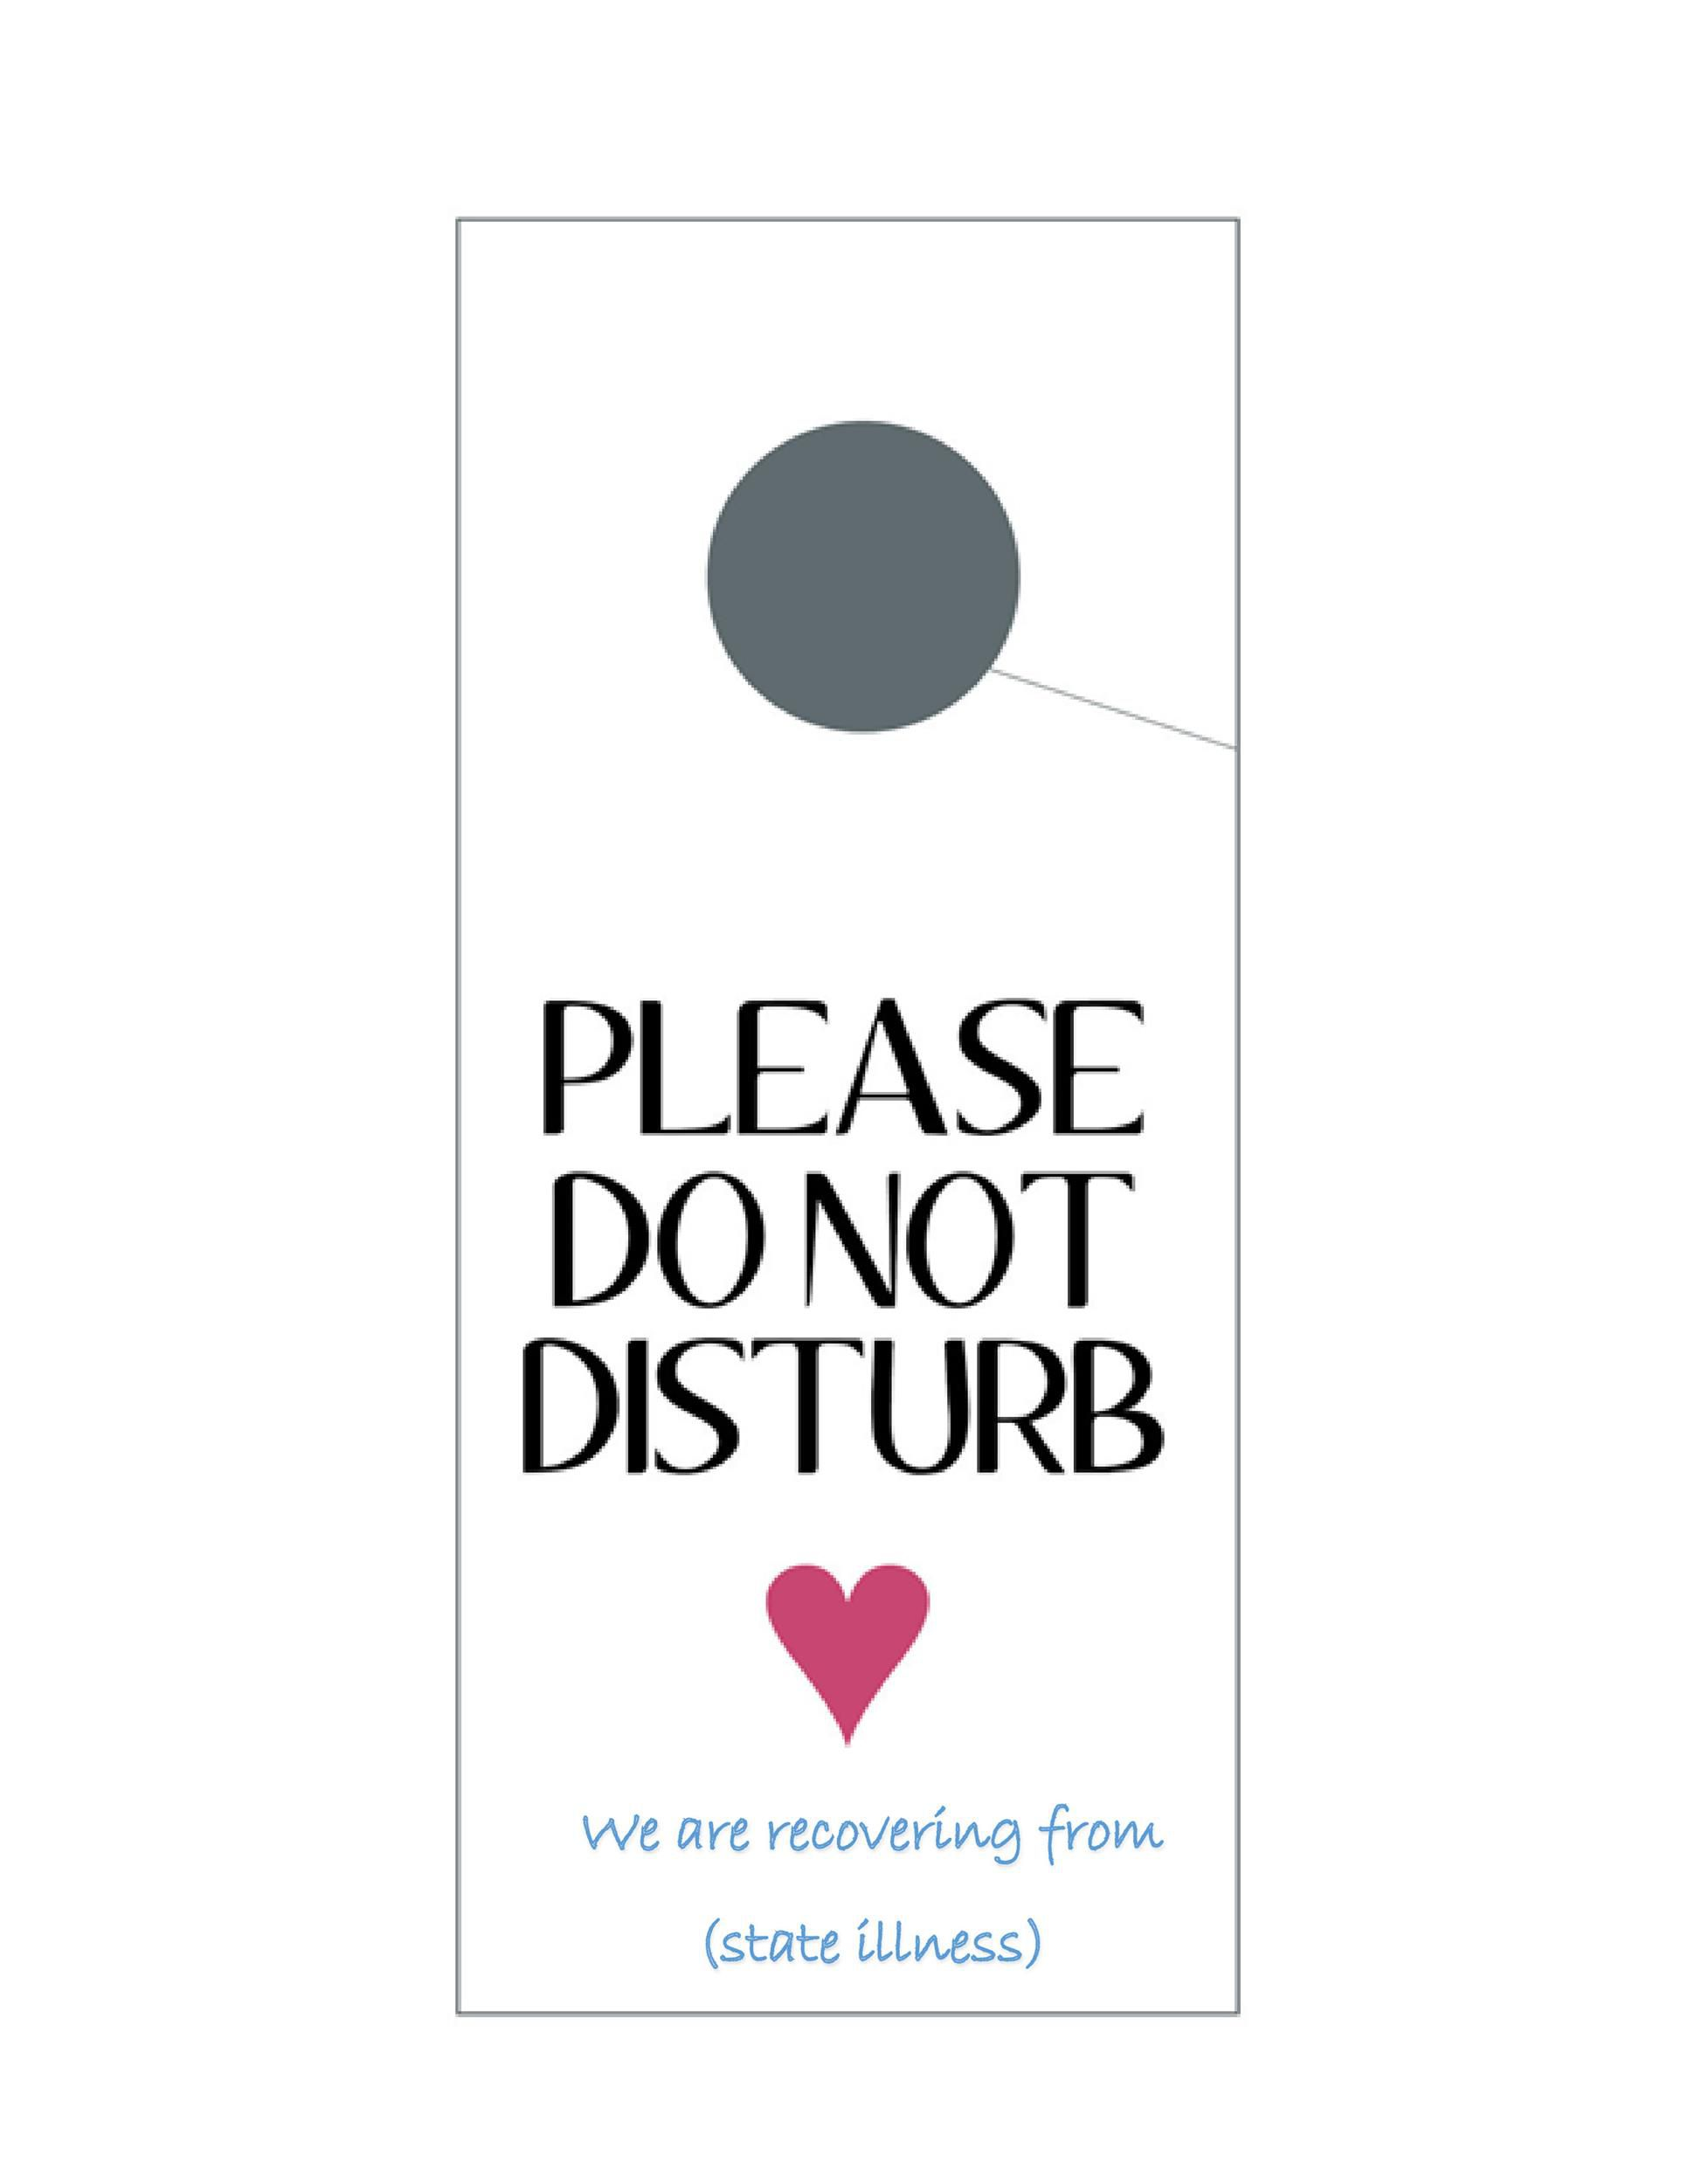 006 Awful Door Hanger Template Word High Definition  Download Free Blank For MicrosoftFull